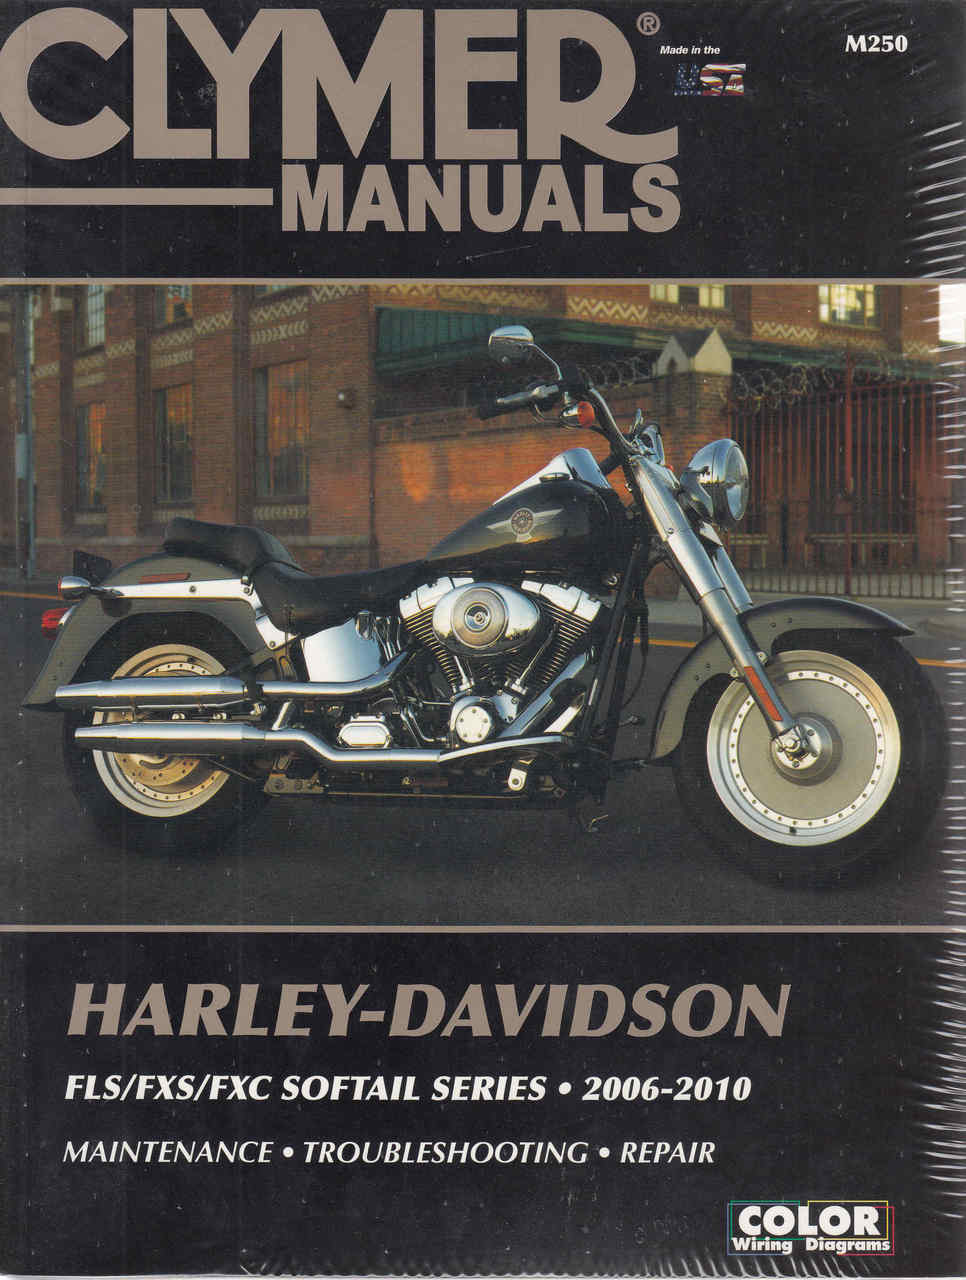 Harley-Davidson FLS, FXS, FXC Softail Series 2006 - 2010 Workshop Manual ...